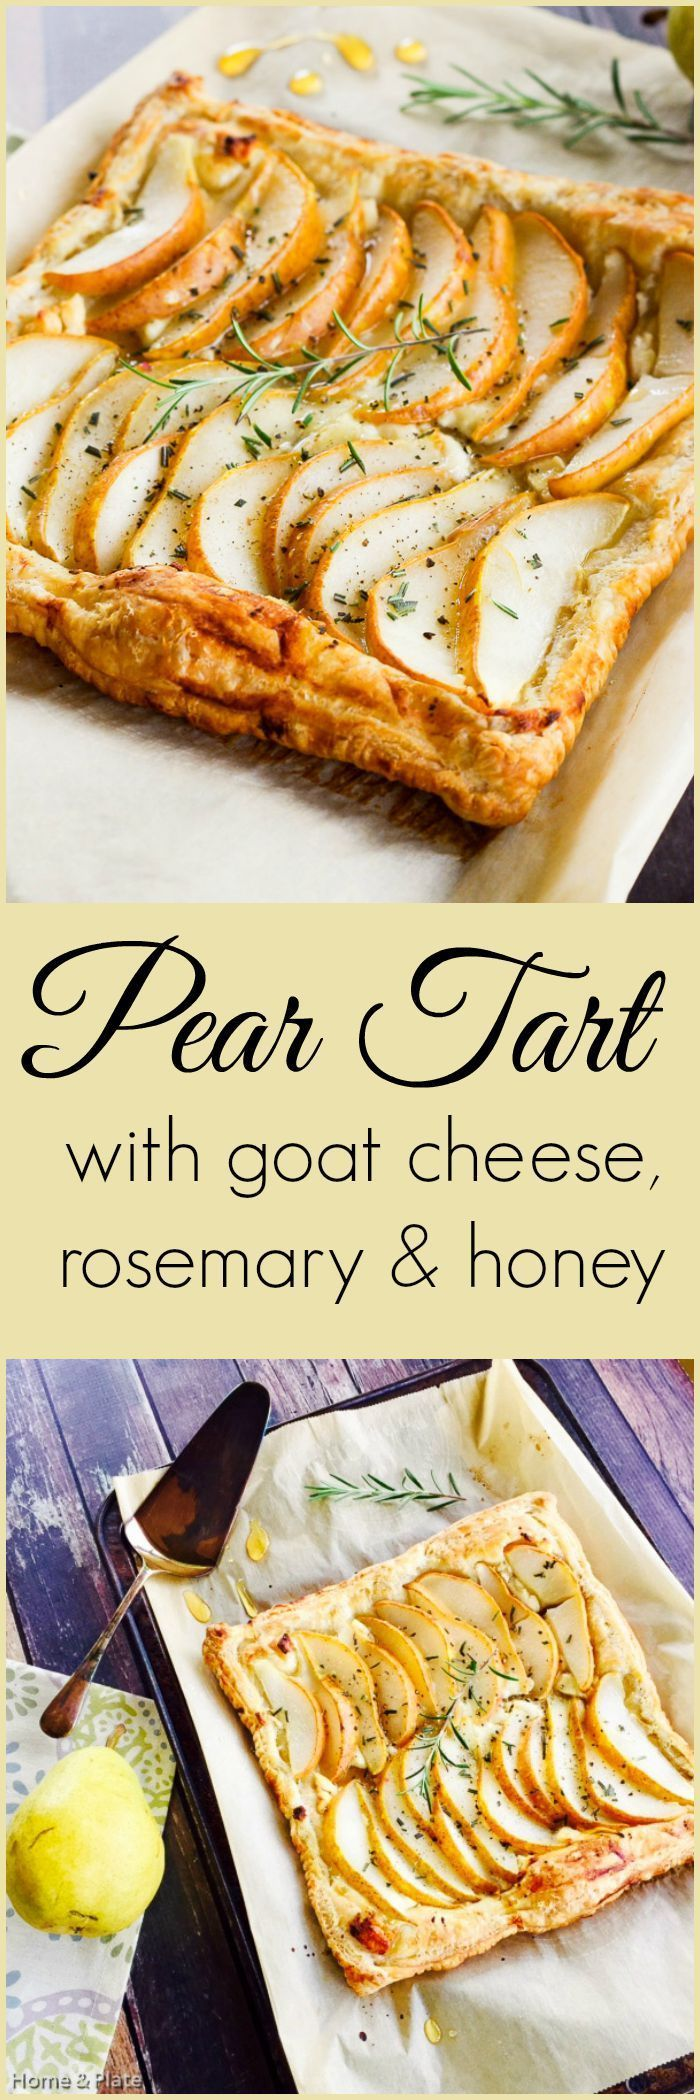 Pear Tart with Goat Cheese, Rosemary & Honey   Home & Plate   www.homeandplate.com   Enjoy sweet pears on this puff pastry tart prepared with goat cheese, honey and fragrant rosemary.